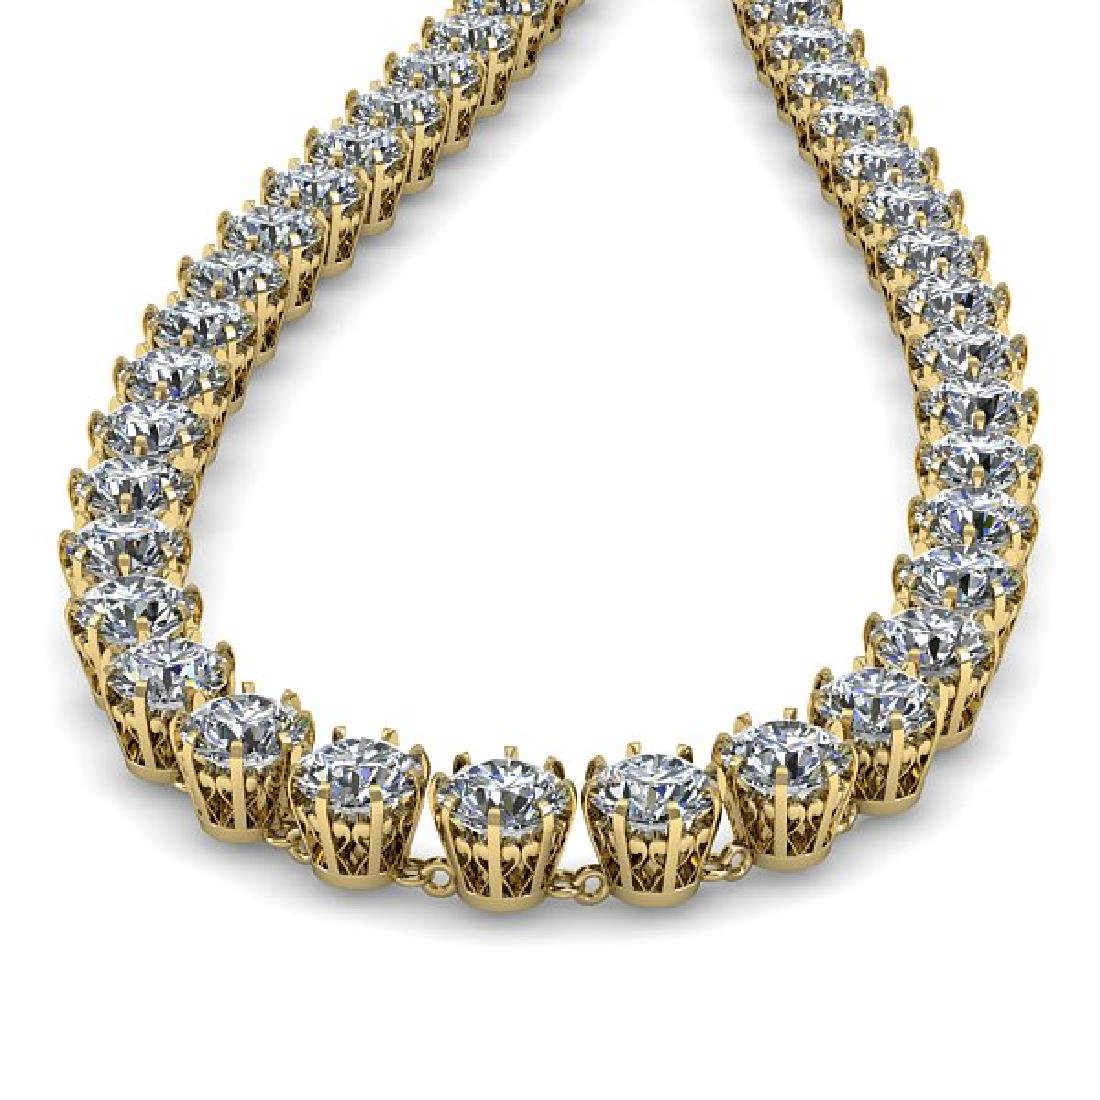 34 CTW SI Certified Diamond Necklace 14K Yellow Gold - 2